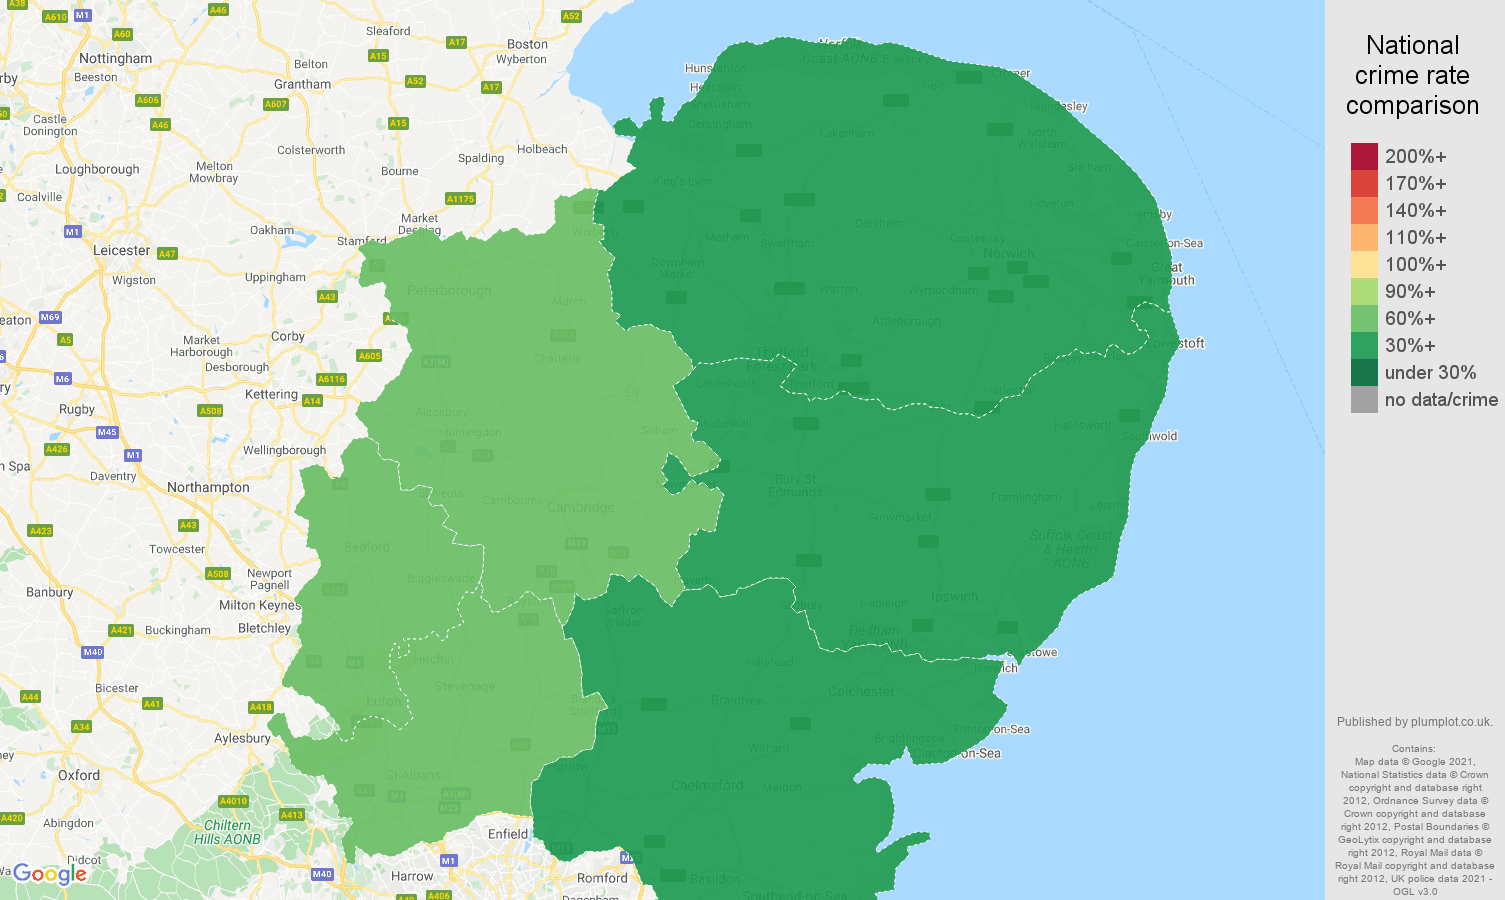 East of England theft from the person crime rate comparison map